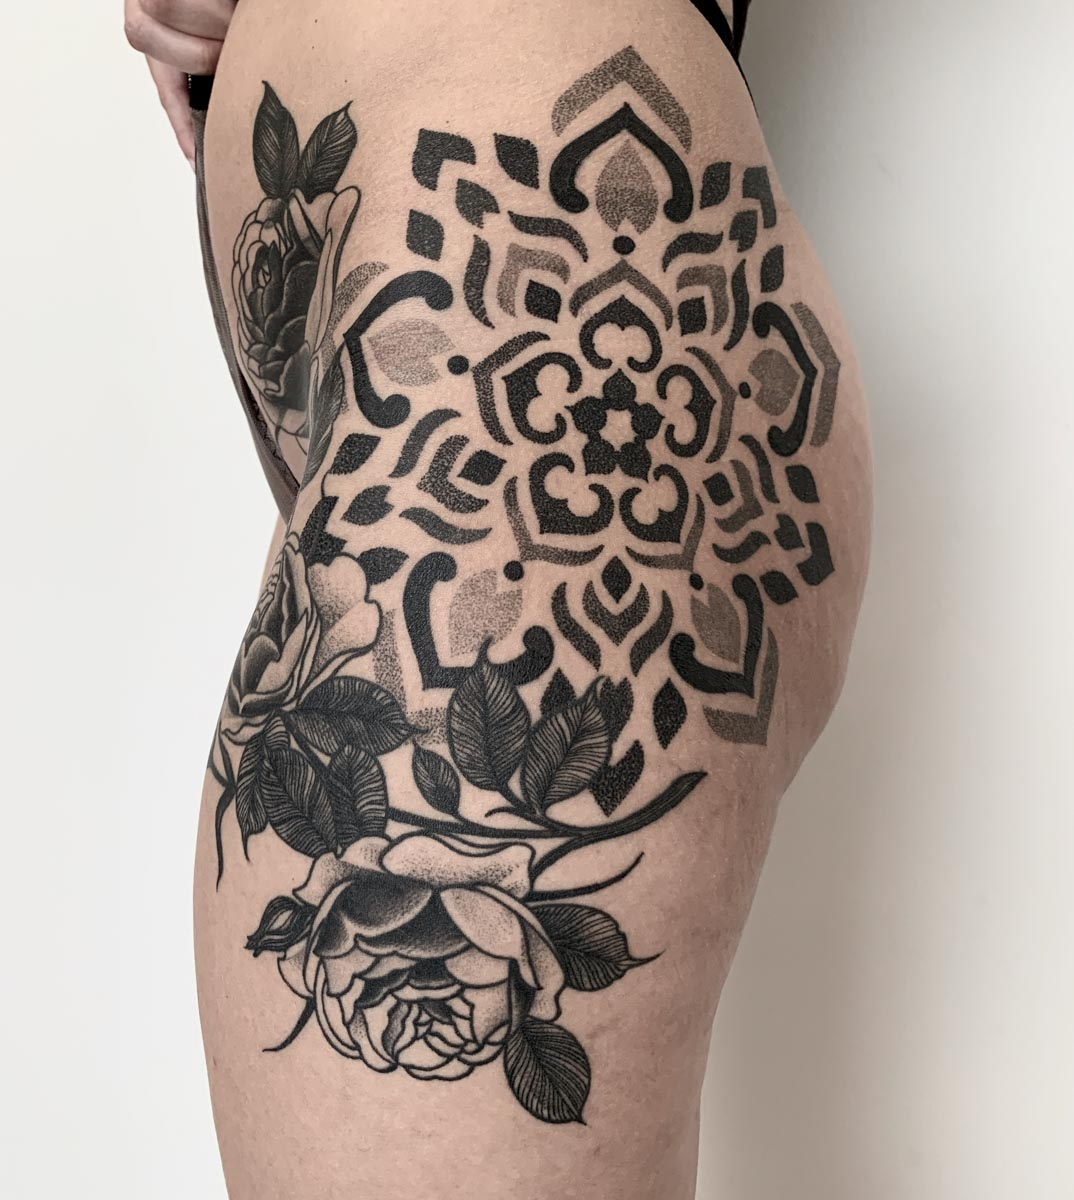 Le Tatuarti | Lisa Peri Tattoo